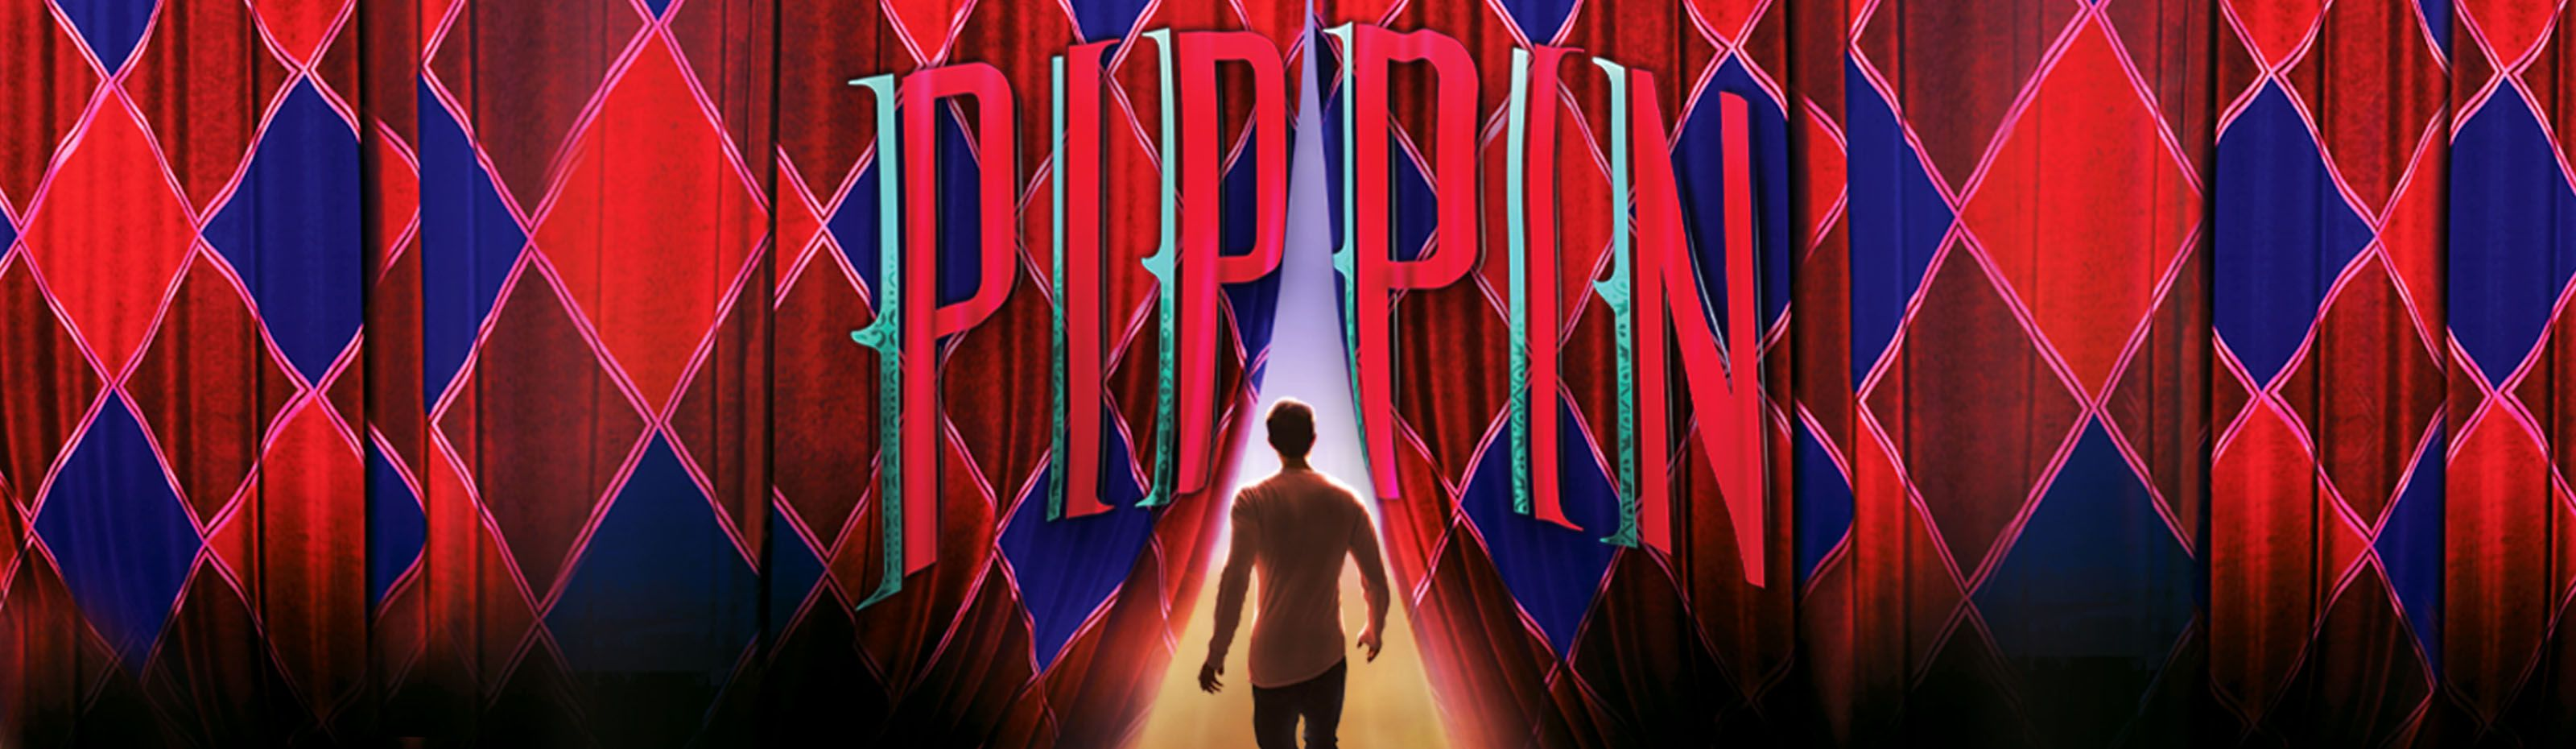 """Pippin"""""""""""